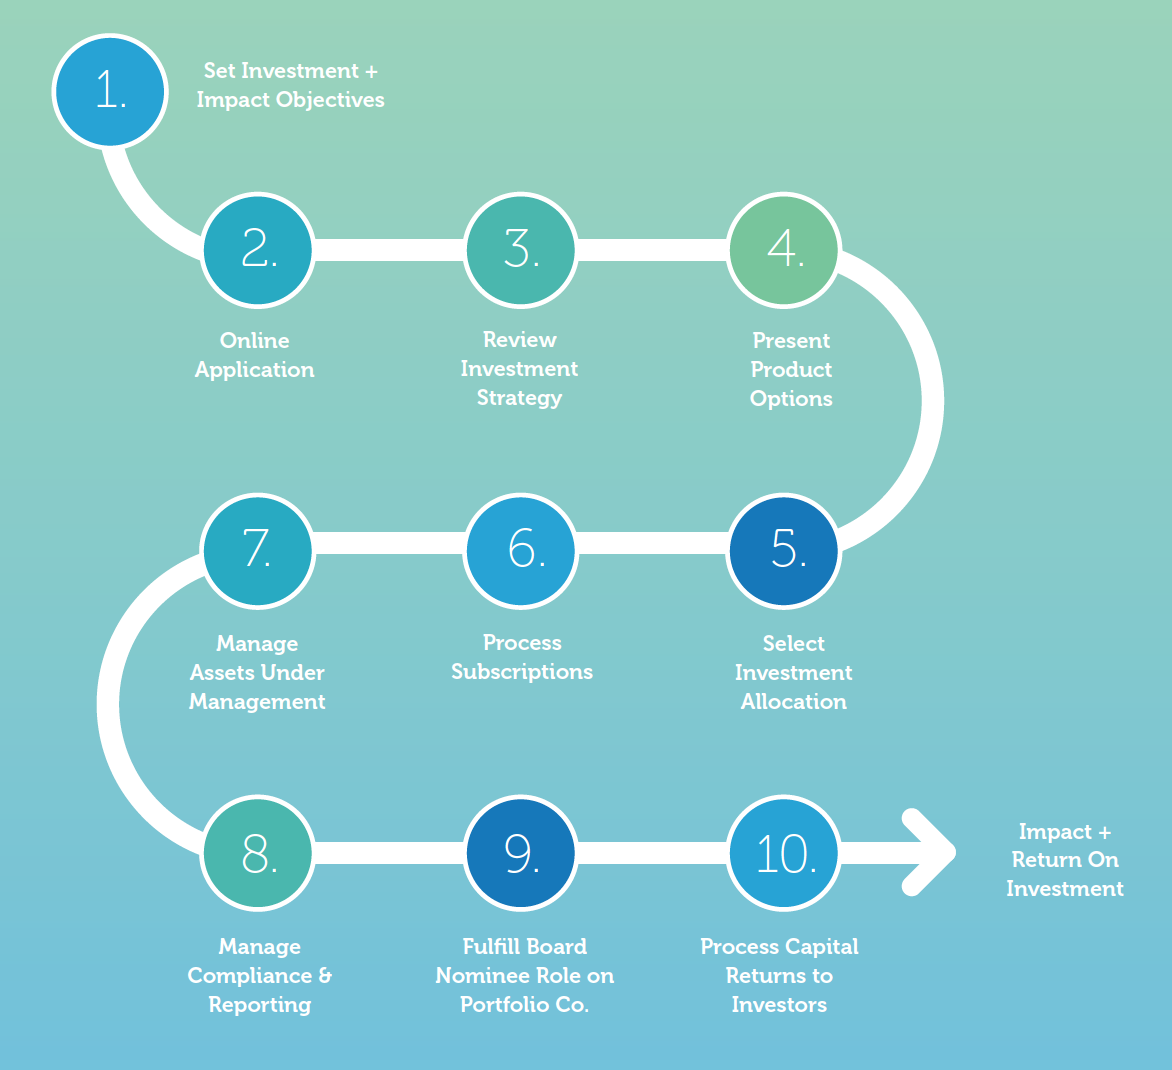 Investor View of Impact Investment Process